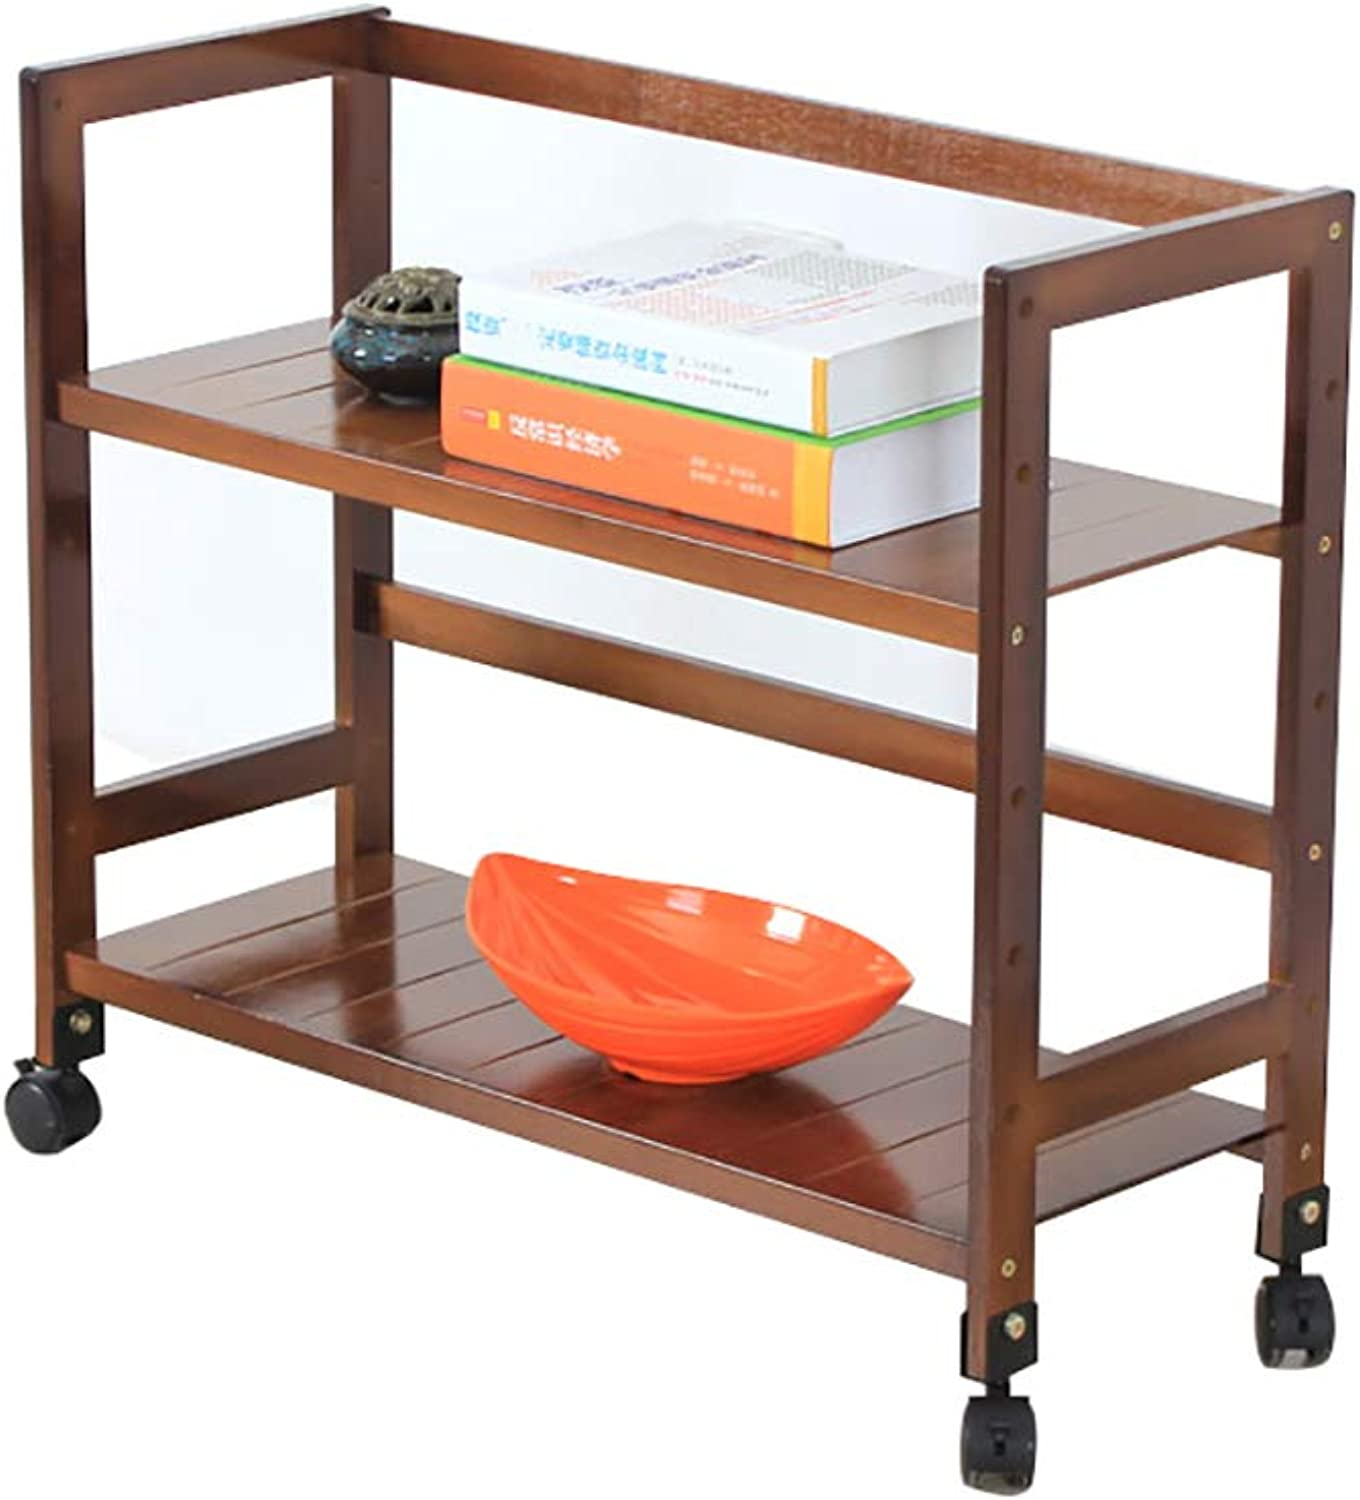 Multi-Layer Shelf Bamboo Landing Two Layers with Pulley Cabinet Printer Shelf Solid Wood Mobile Storage Rack Household (color   B)